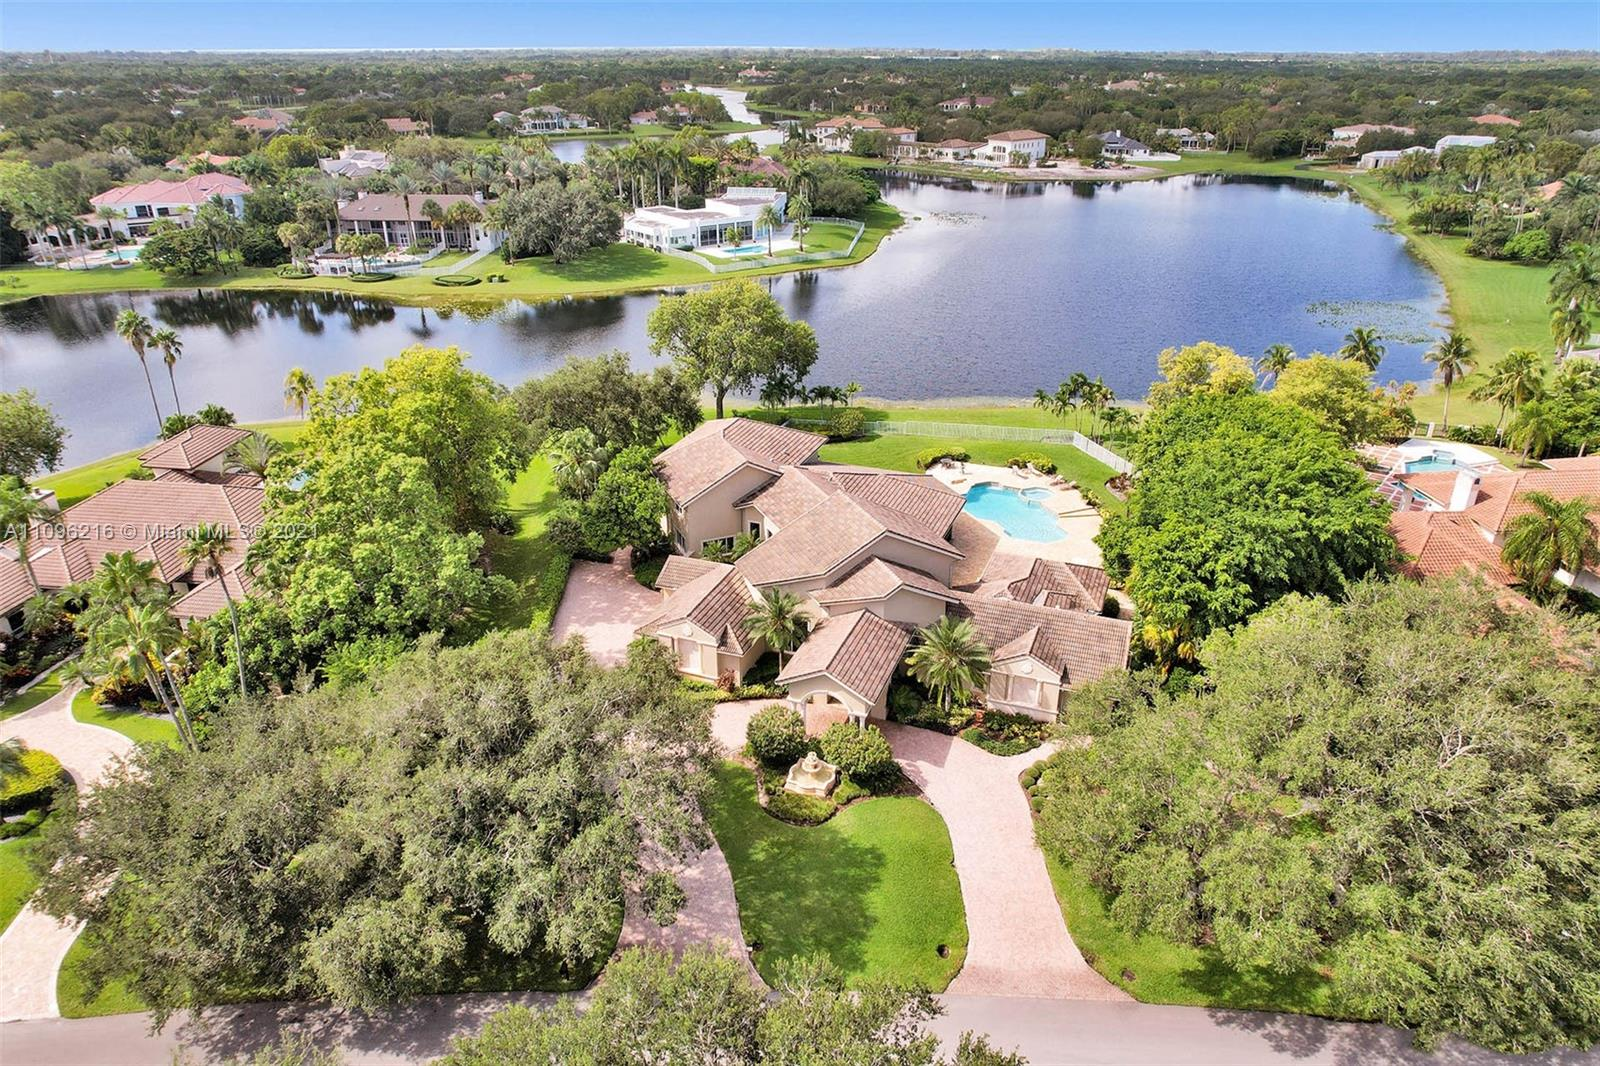 Absolutely spectacular, one-of-a-kind estate located in the prestigious community of Windmill Ranch Estates. This pristine residence includes: grand circular paver driveway with porte cochere, open dining room & living room with breathtaking lake views, master bedroom suite with sitting area, office, exercise room & luxurious bath, gourmet kitchen with center island & every beautiful detail imaginable, the family room & breakfast area open perfectly to the billiard room with bar, 3 bedrooms downstairs, 3 bedrooms upstairs with a large loft, incredible wrap around screened patio with summer kitchen to enjoy South Florida living at its finest along with sprawling outdoor patio areas perfect for entertaining around the oversized pool & spa, perched high on a 1.33 acre lot with a 3 car garage!